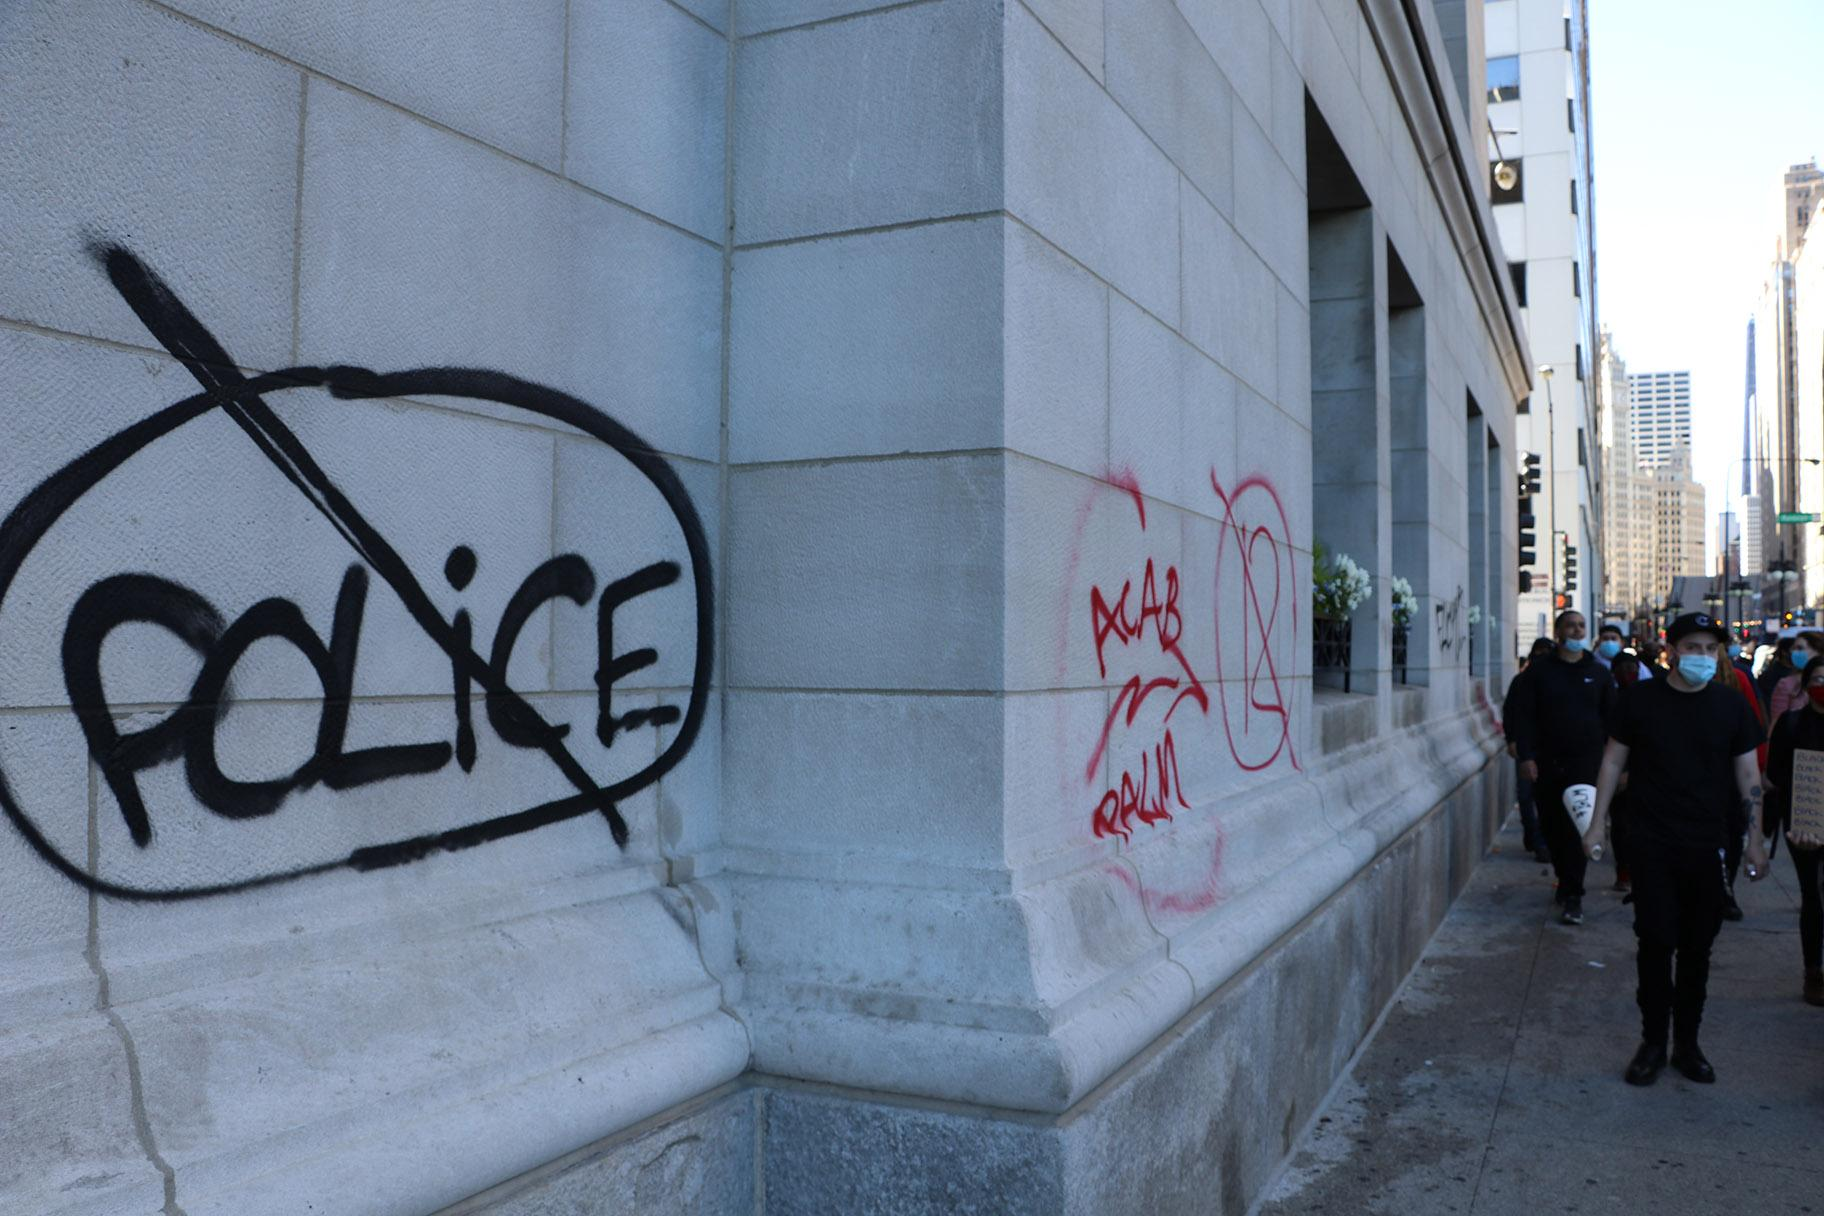 Graffiti was spray-painted throughout the protest route, which covered large parts of the Loop. (Evan Garcia / WTTW News)